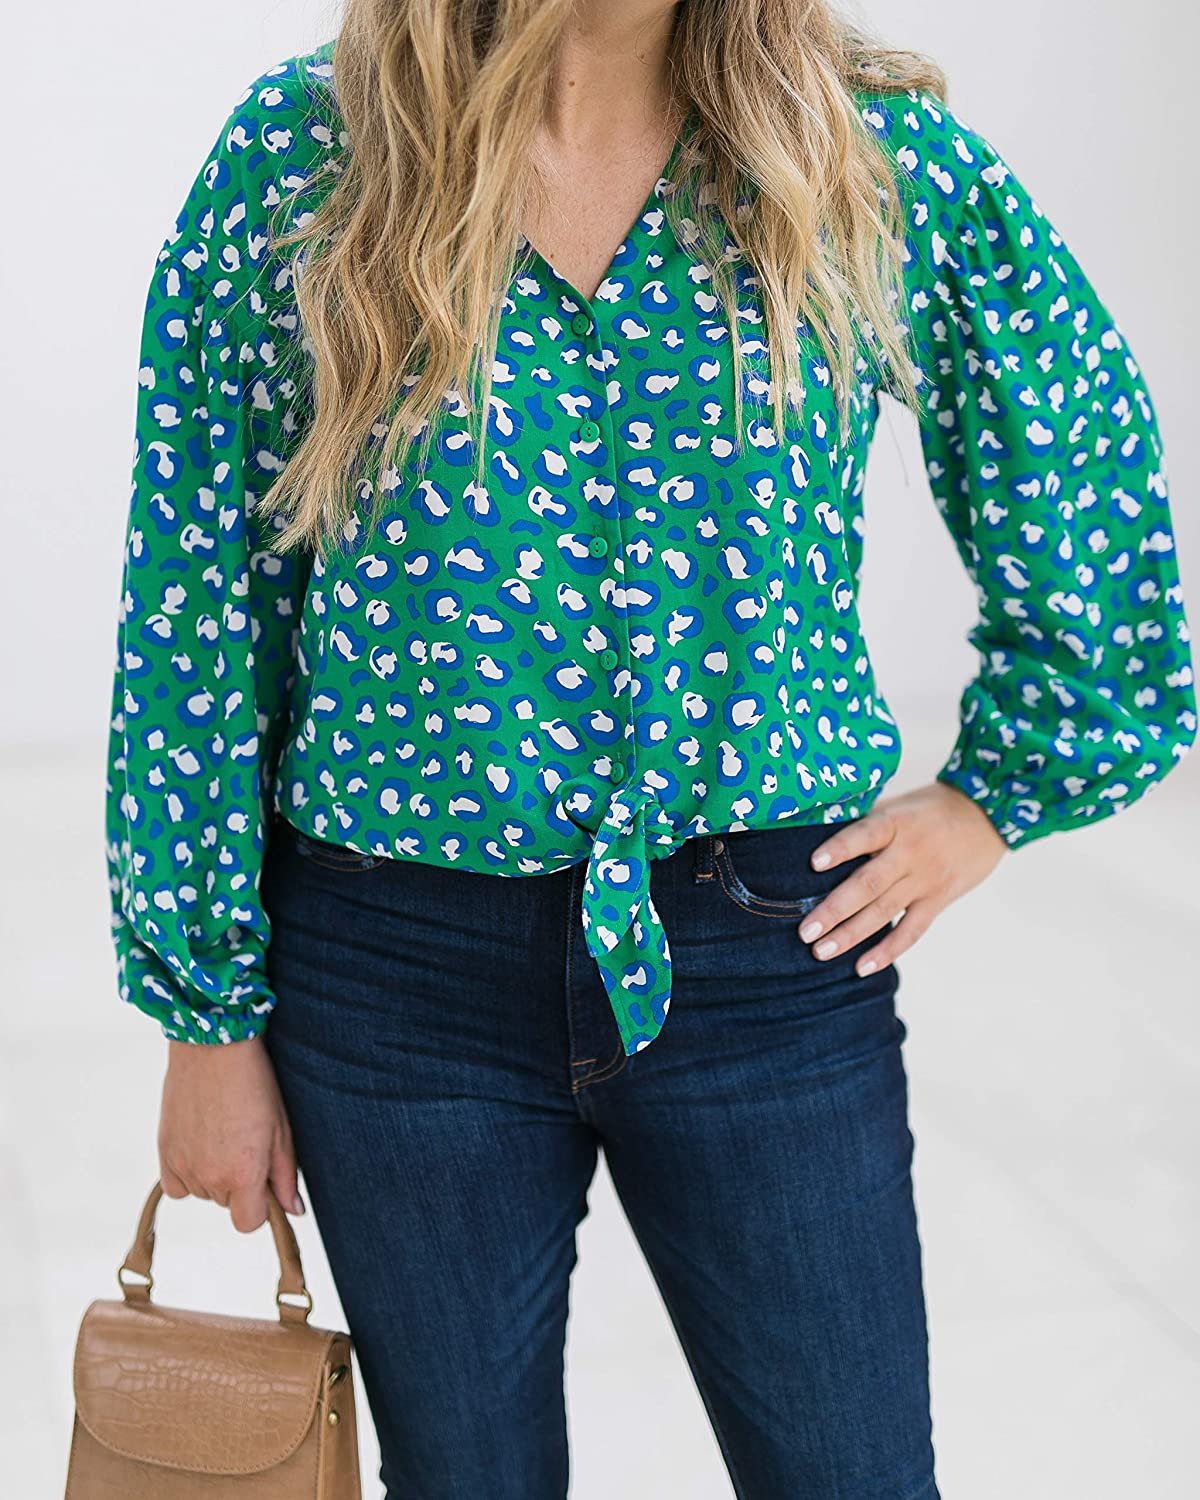 The Drop Women's Emerald Animal Print V-Neck Tie-Front Button-Down Shirt by @graceatwood